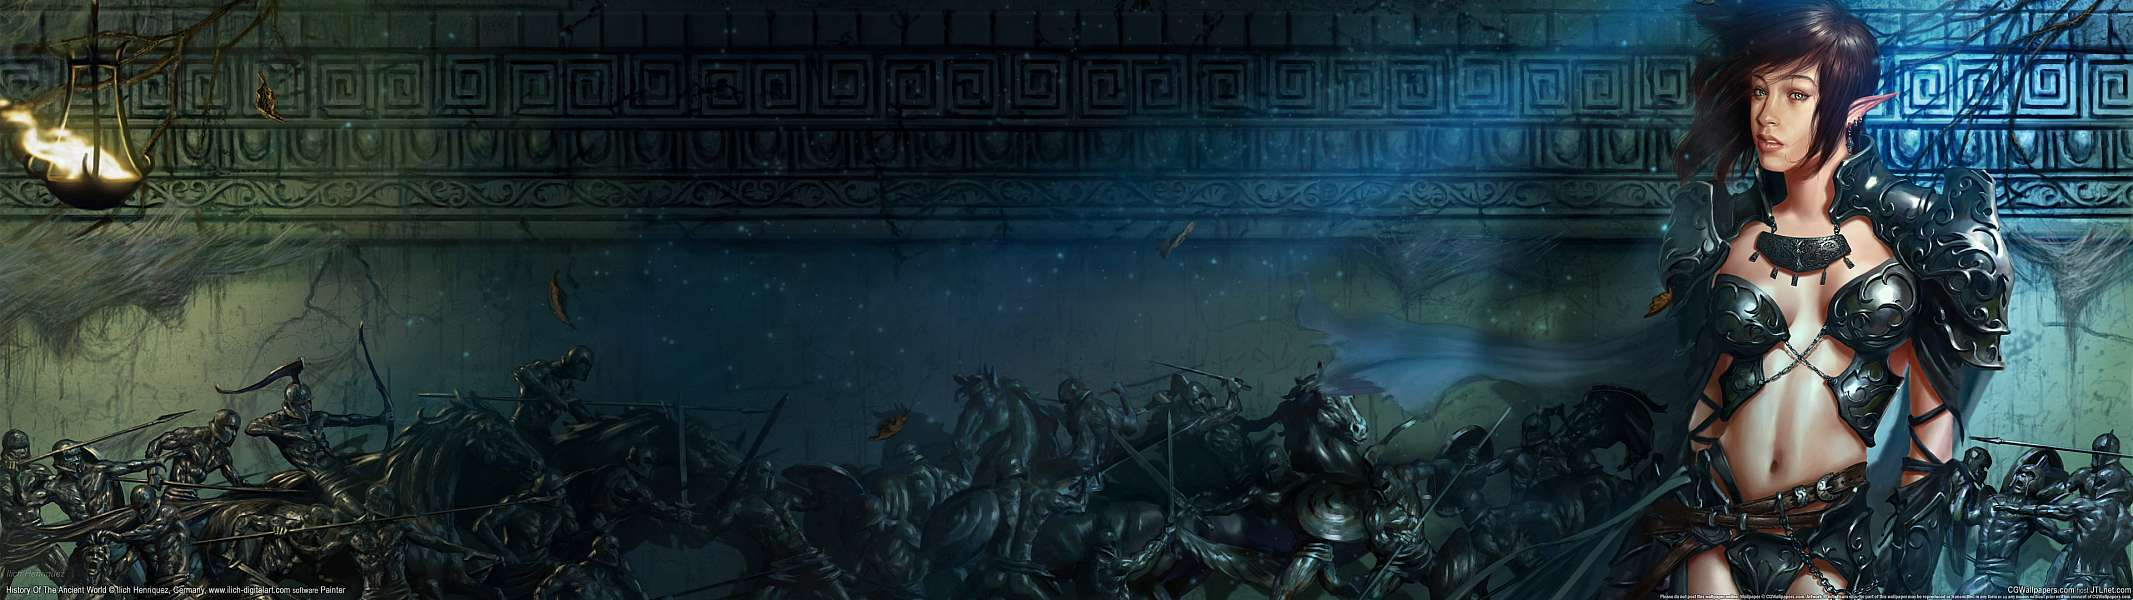 History of the Ancient World dual screen wallpaper